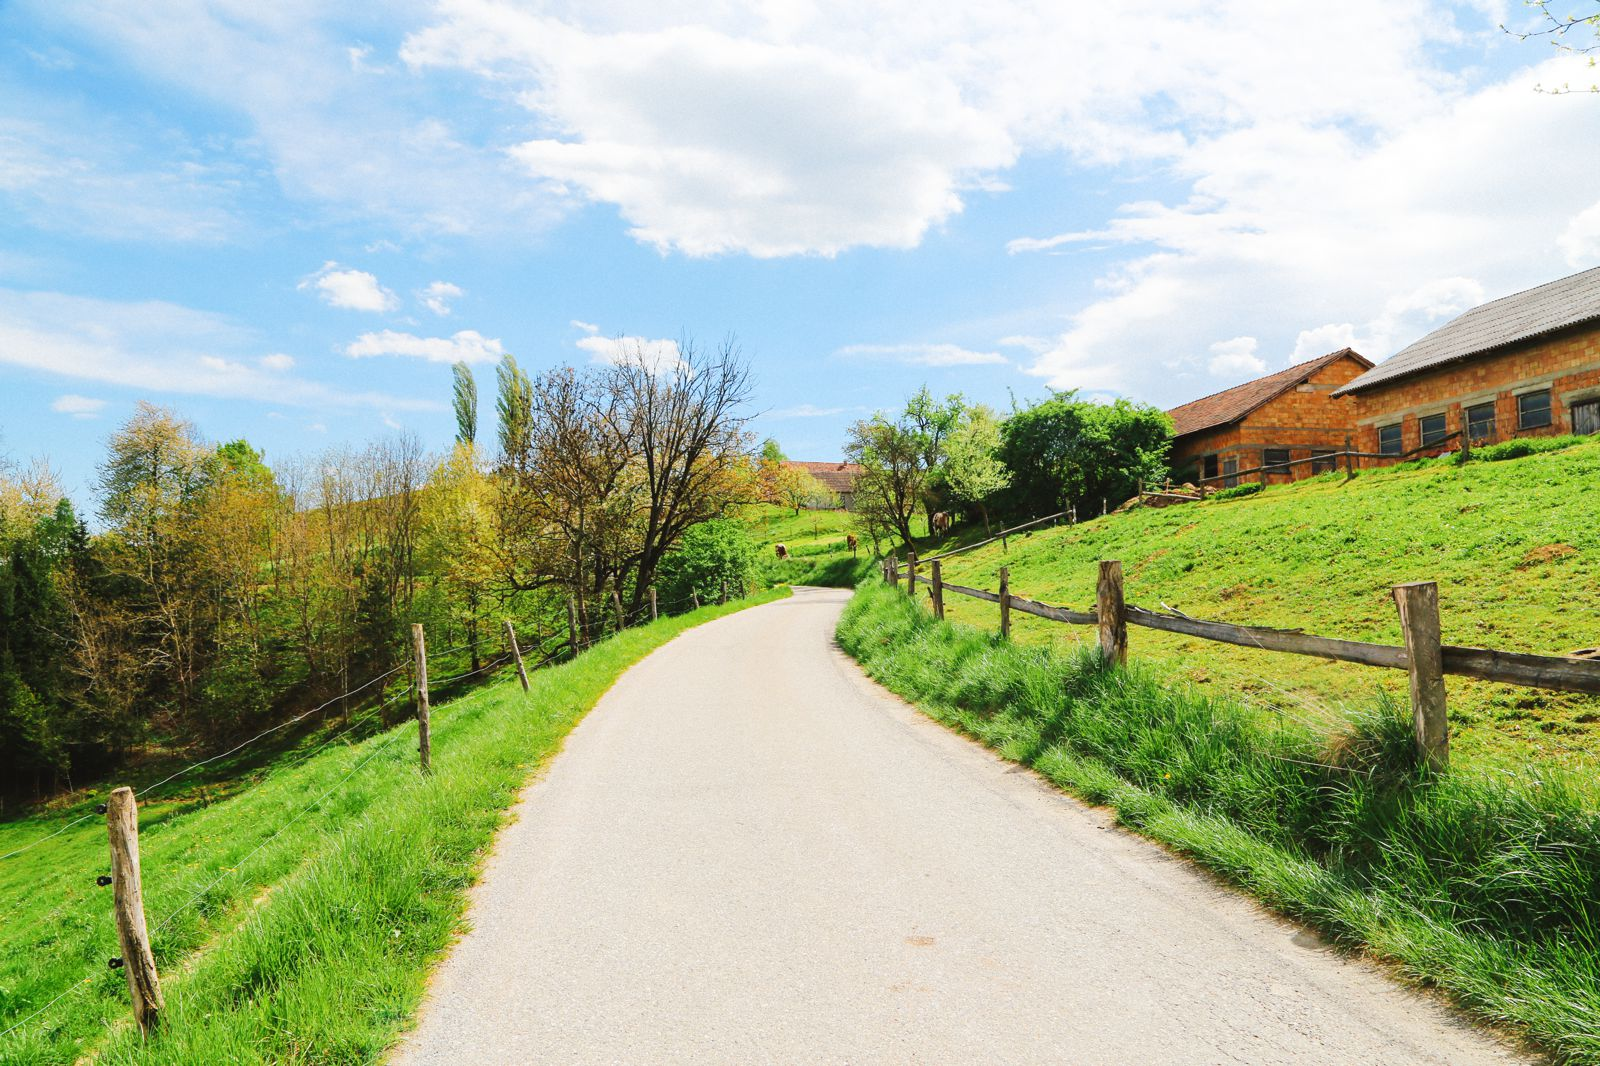 There's A Big Reason You Should Visit Slovenia This Year - The Wine! (72)